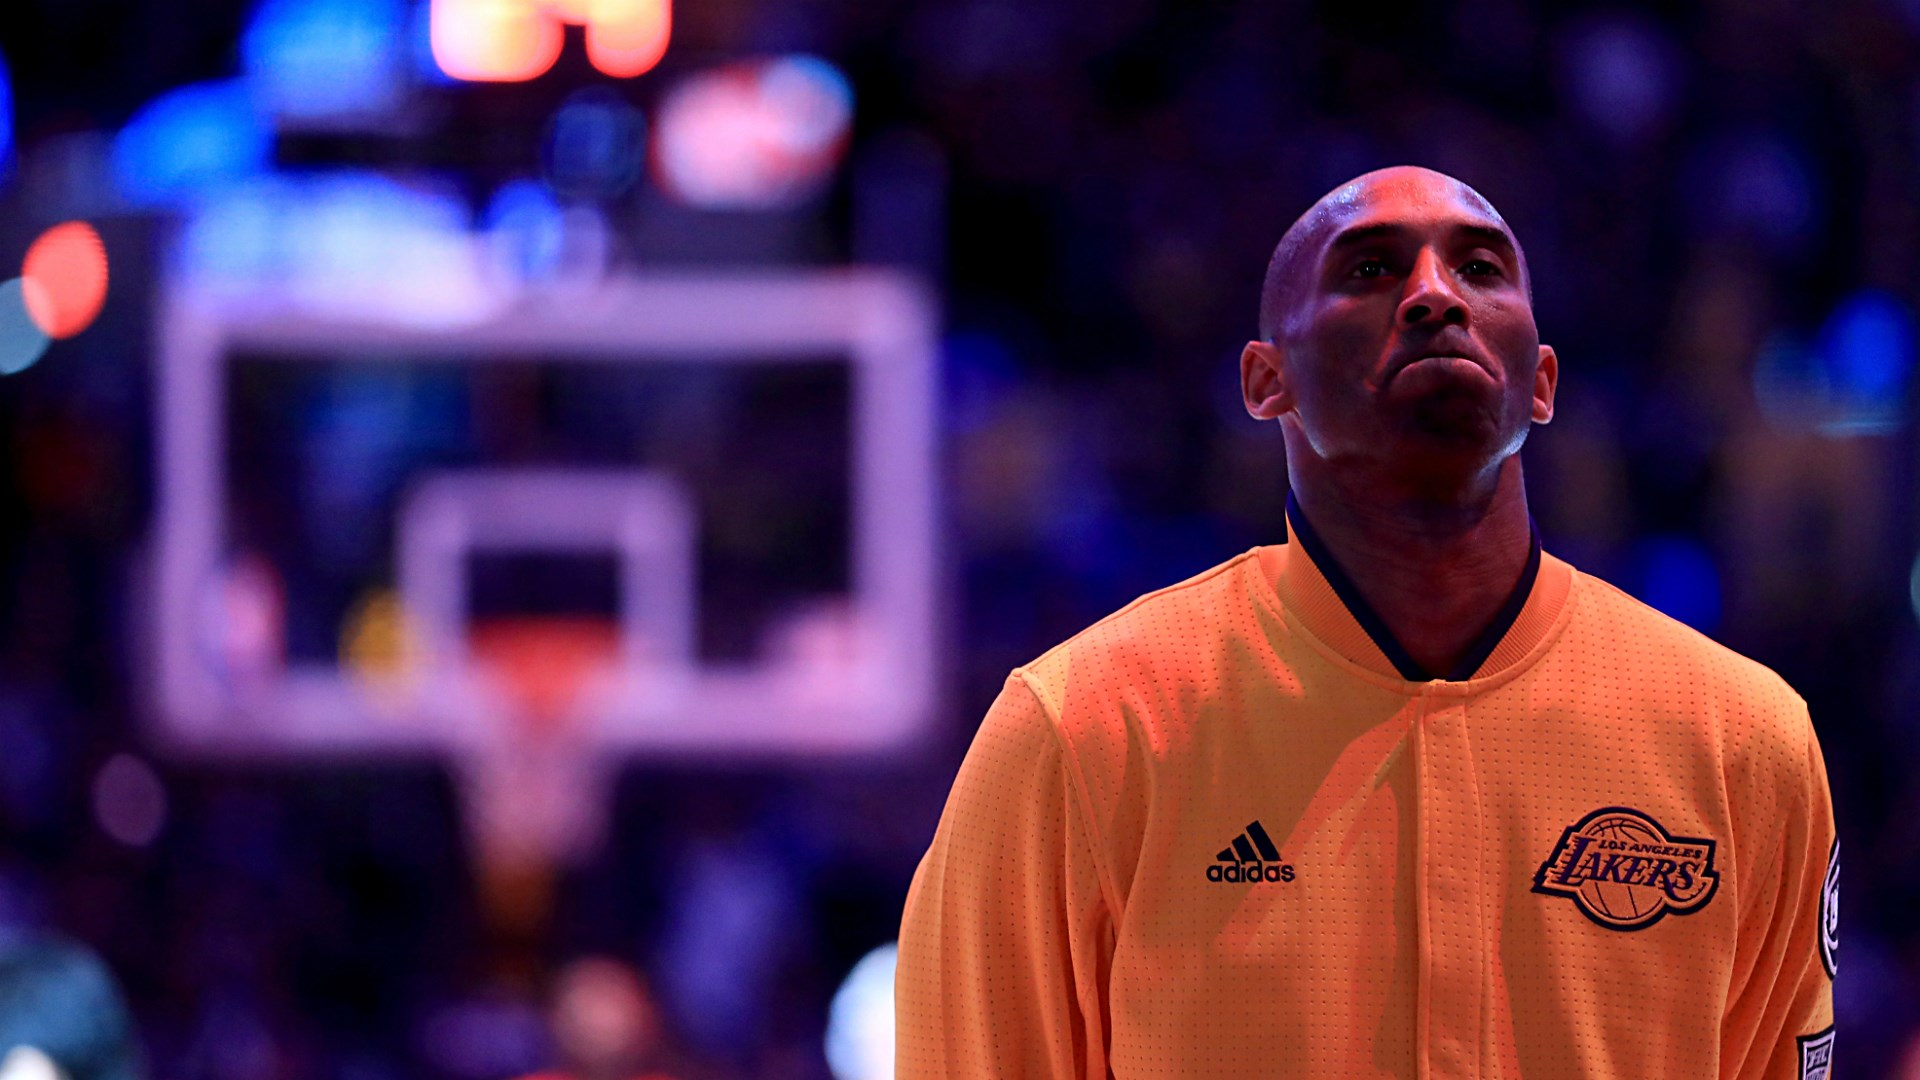 kobe bryant lakers widescreen computer wallpaper 542